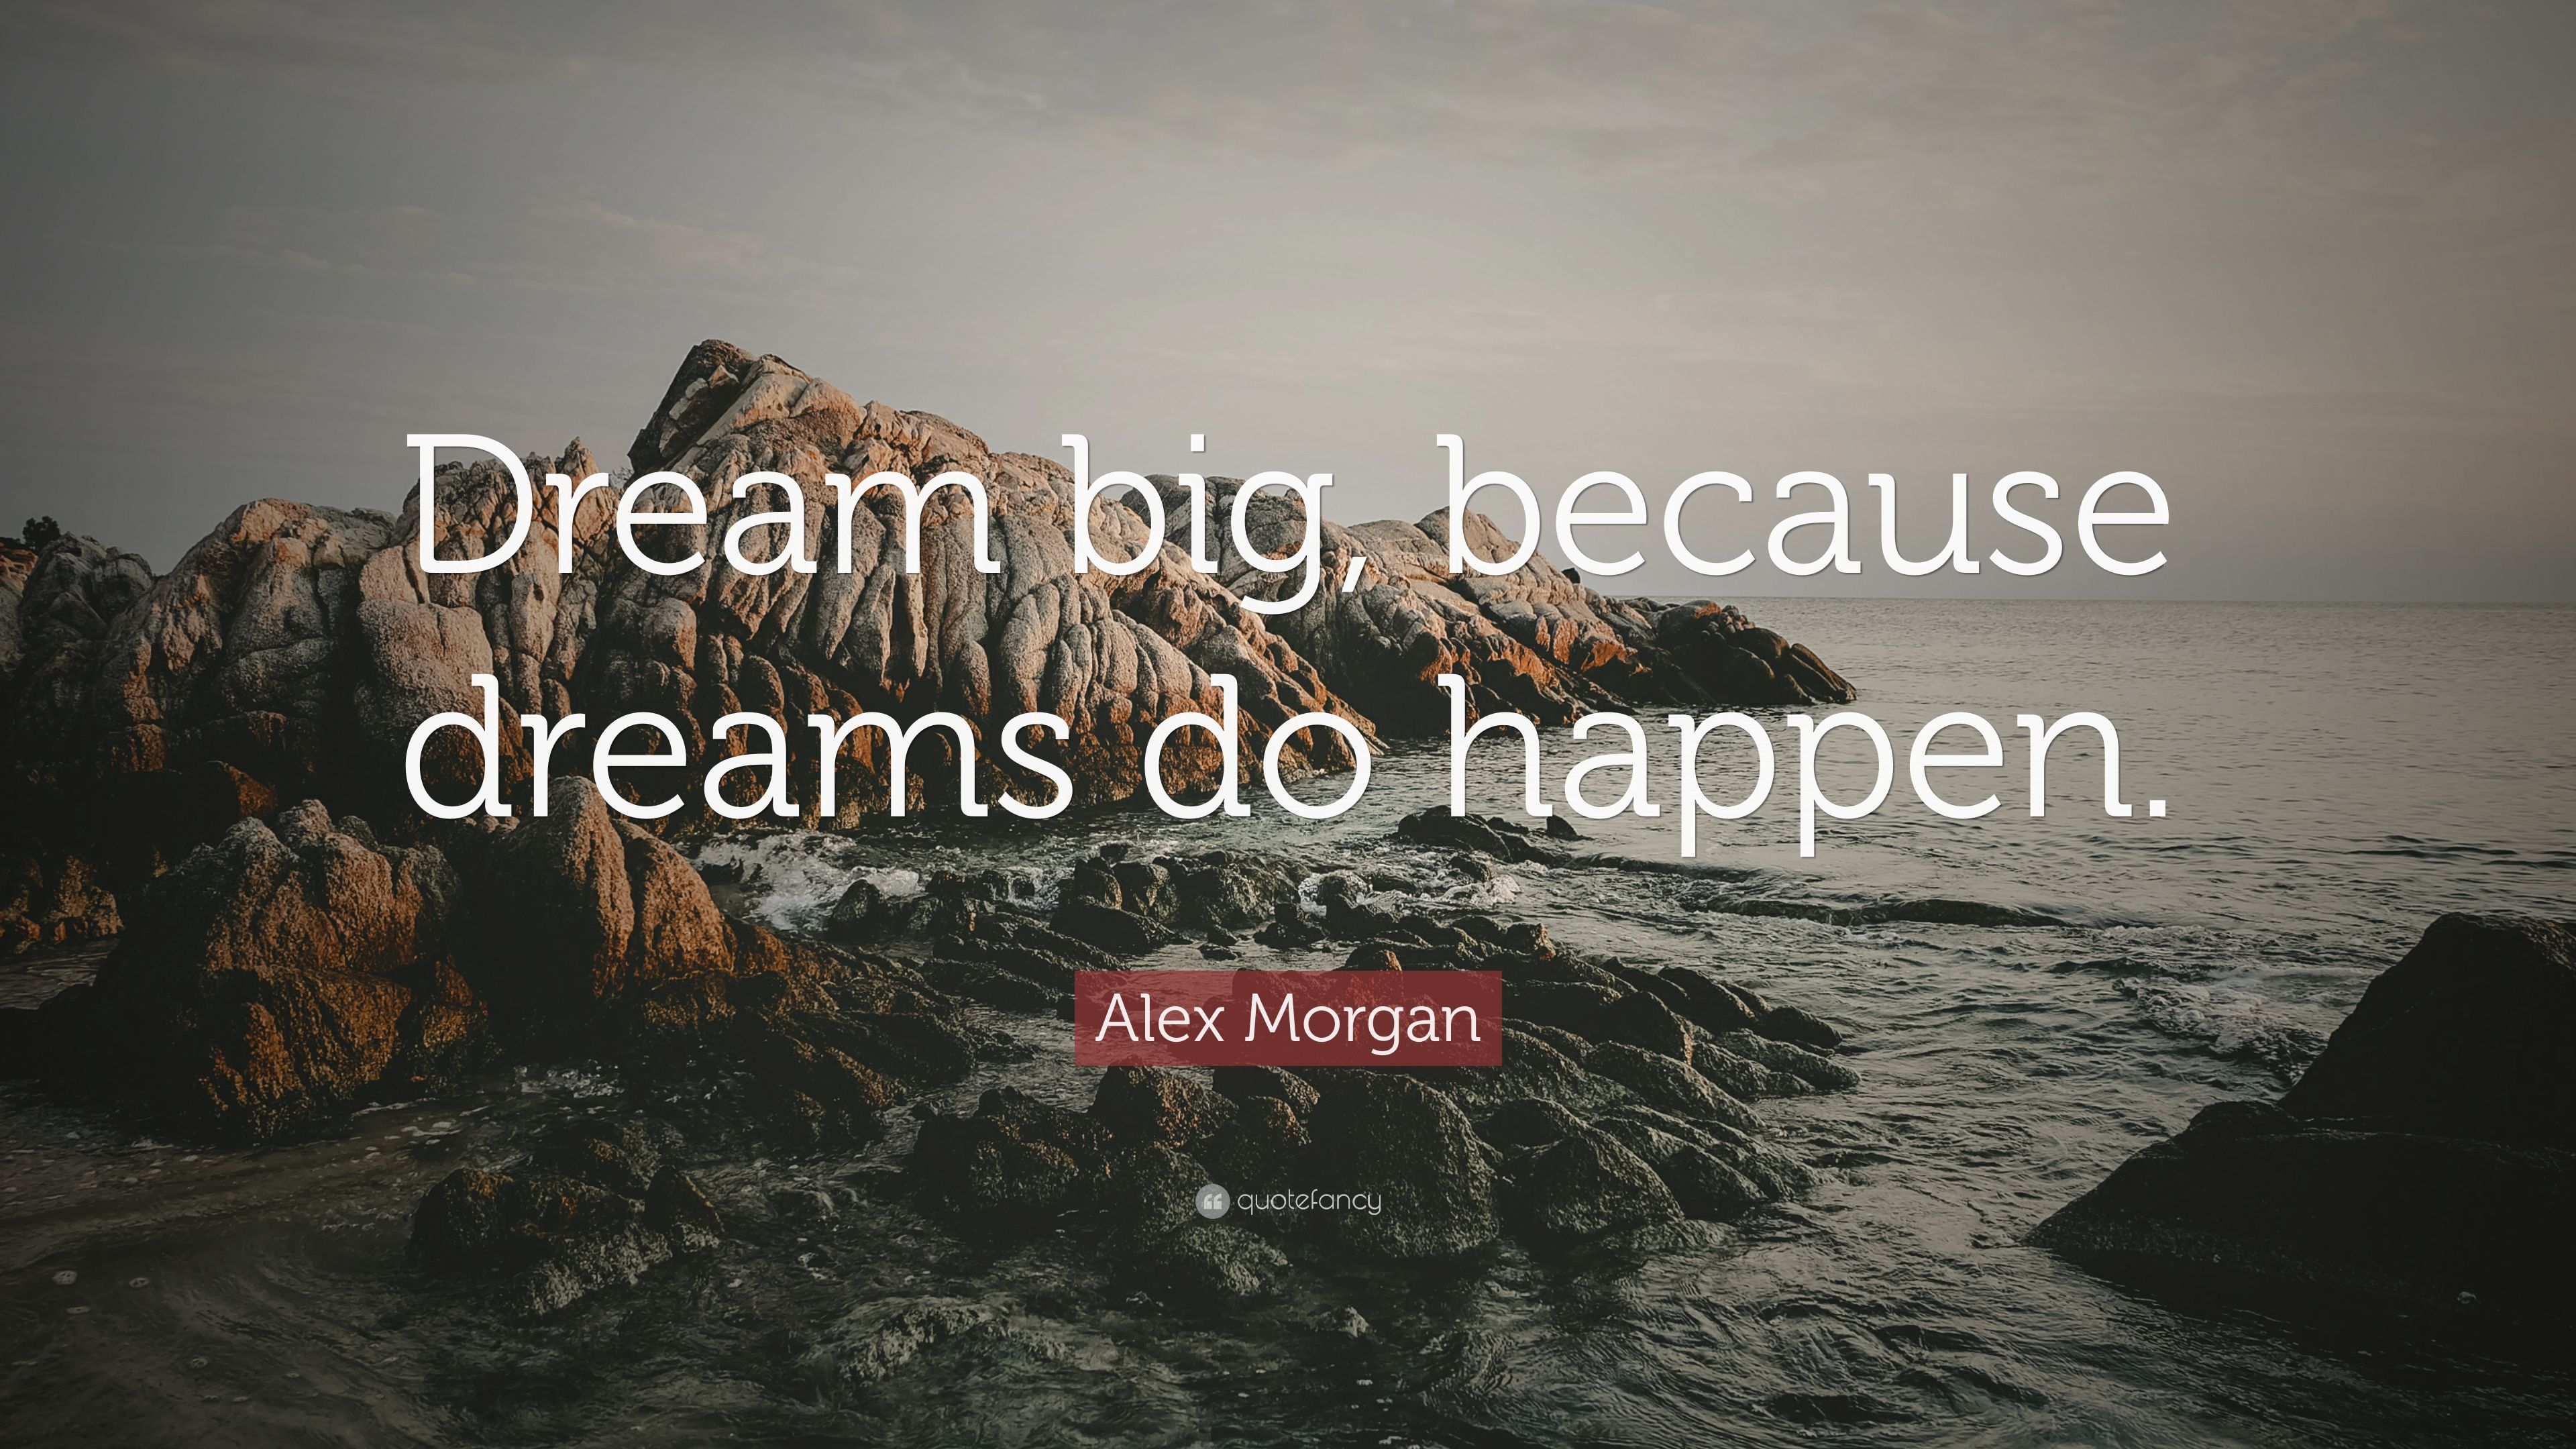 Alex Morgan Quotes Wallpaper Alex Morgan Quote Dream Big Because Dreams Do Happen